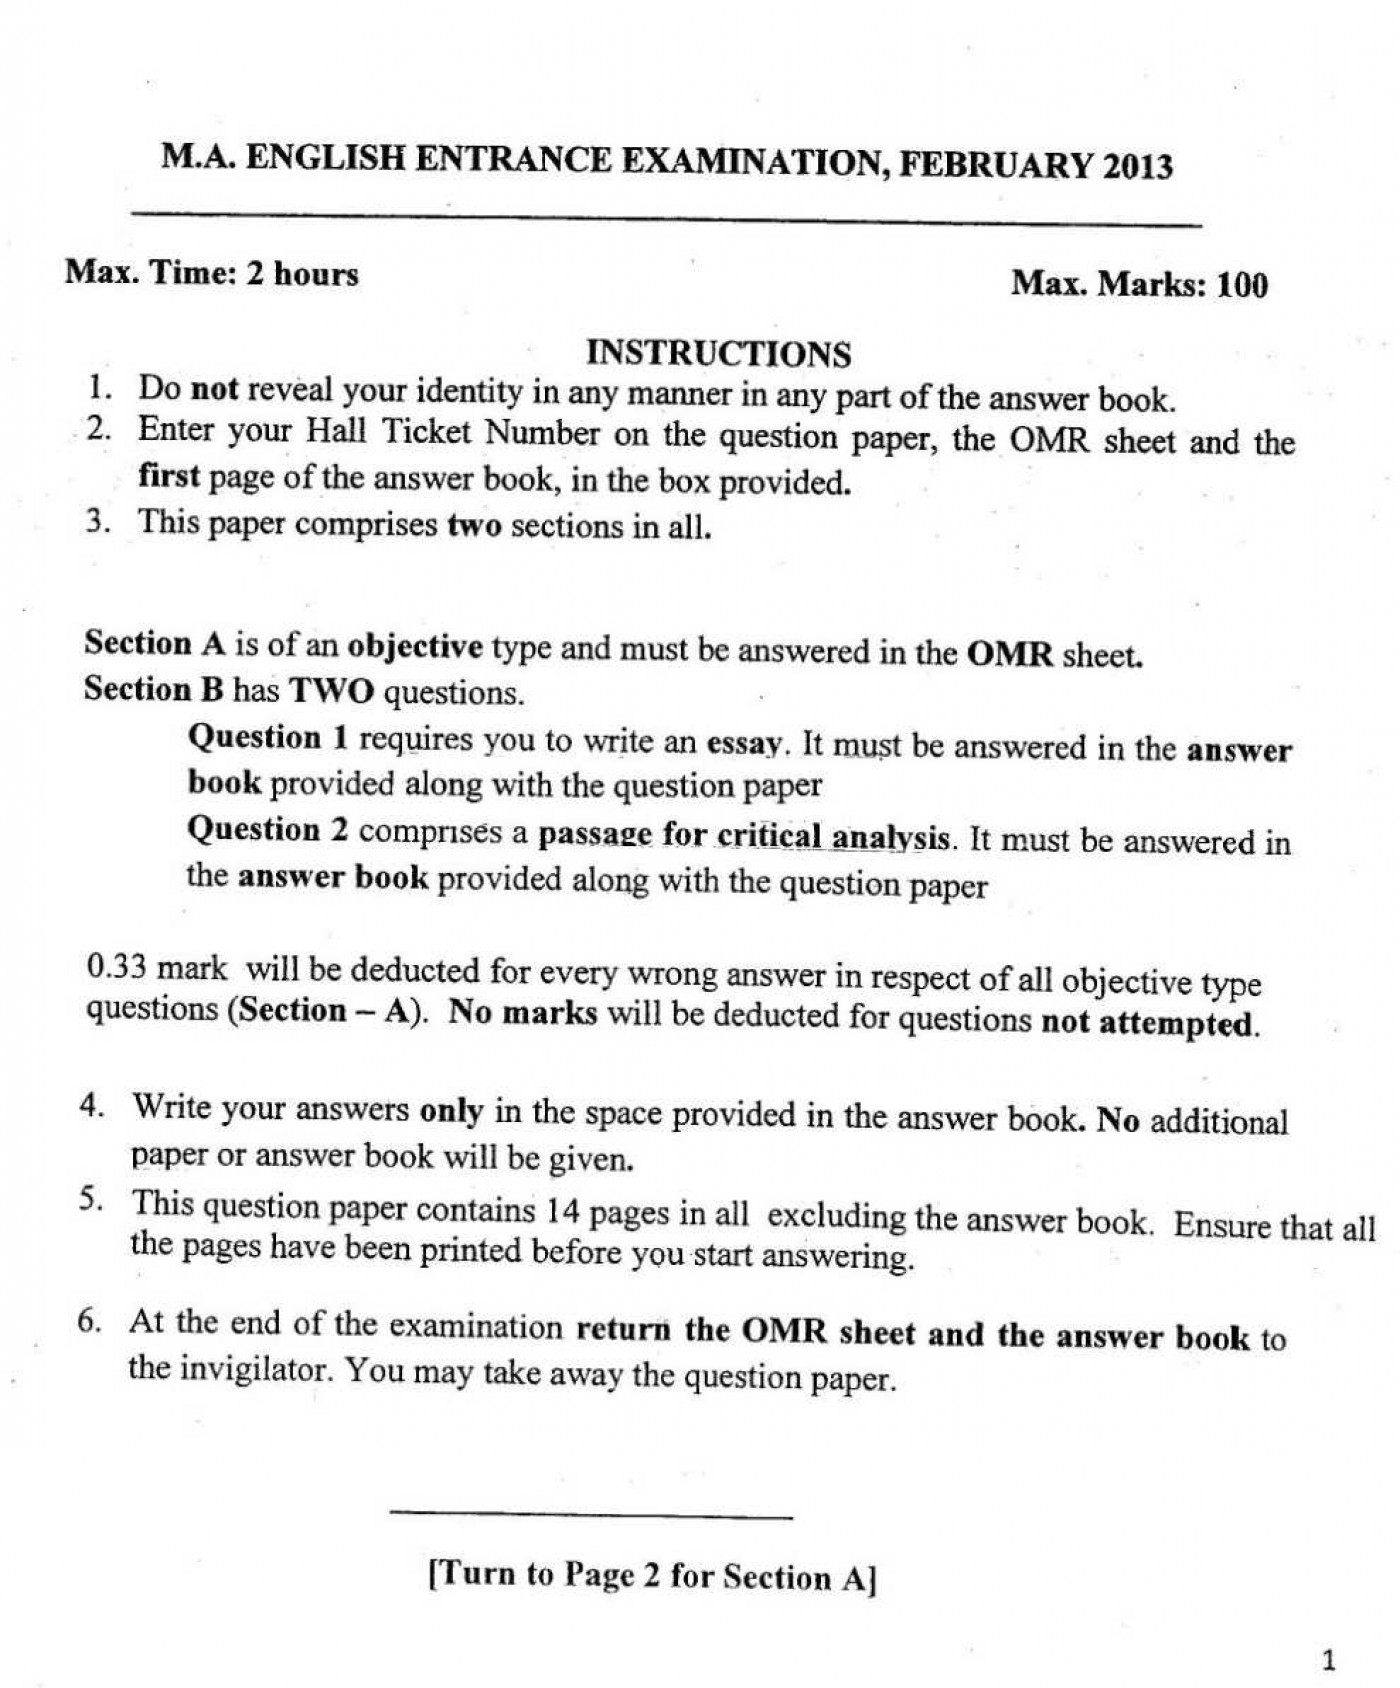 002 What Does Essay Mean In Spanish Help Buy Original How To Pick Good Up Definition Writing Tools Software Previous Year Question Papers Of Ma English Entrance Exam University Hyd Online Marvelous El 1400